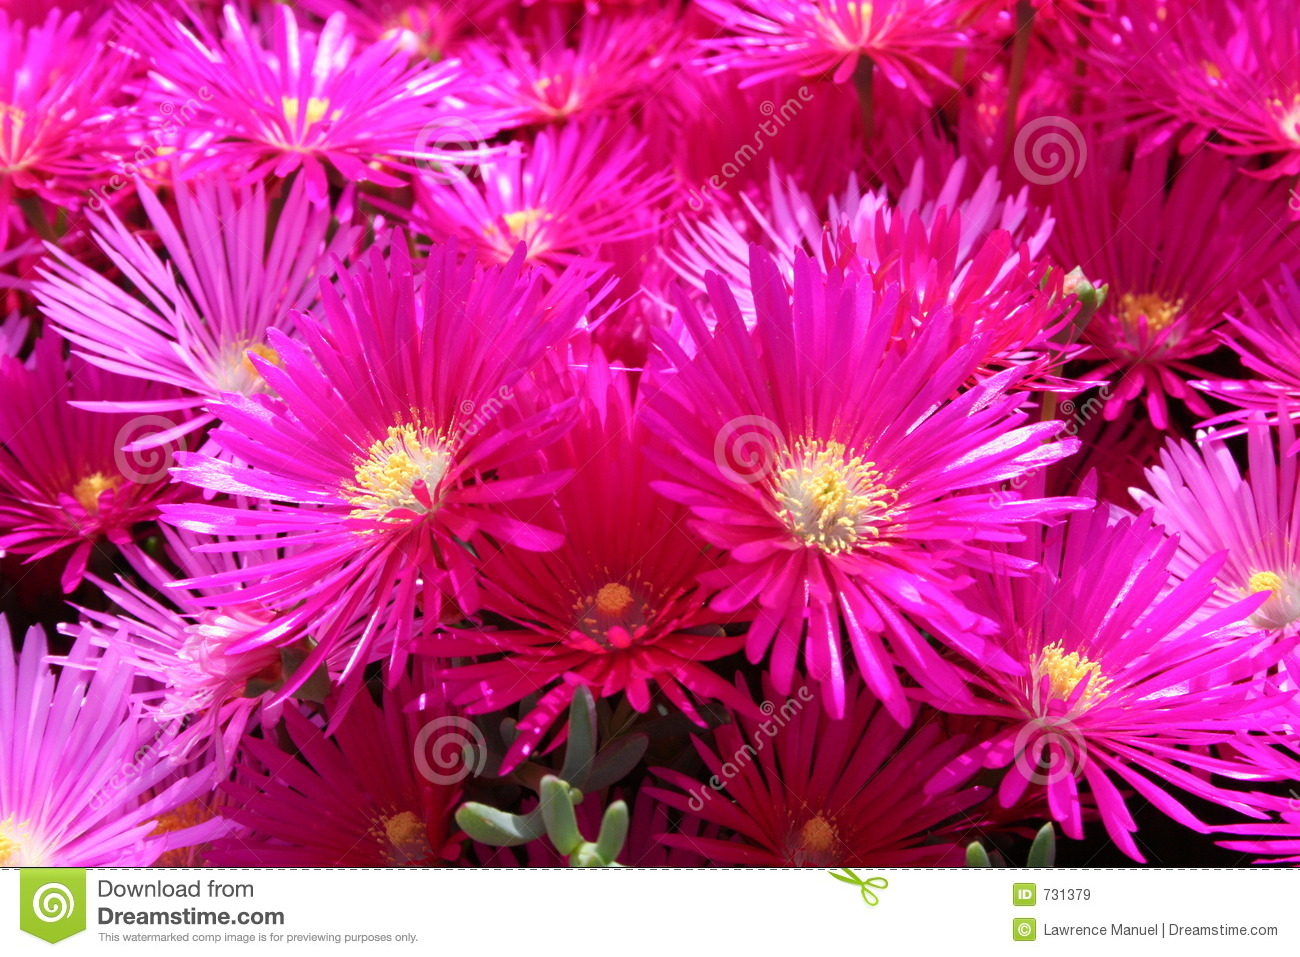 Bright Colored Flowers Stock Image Image Of Lawrence